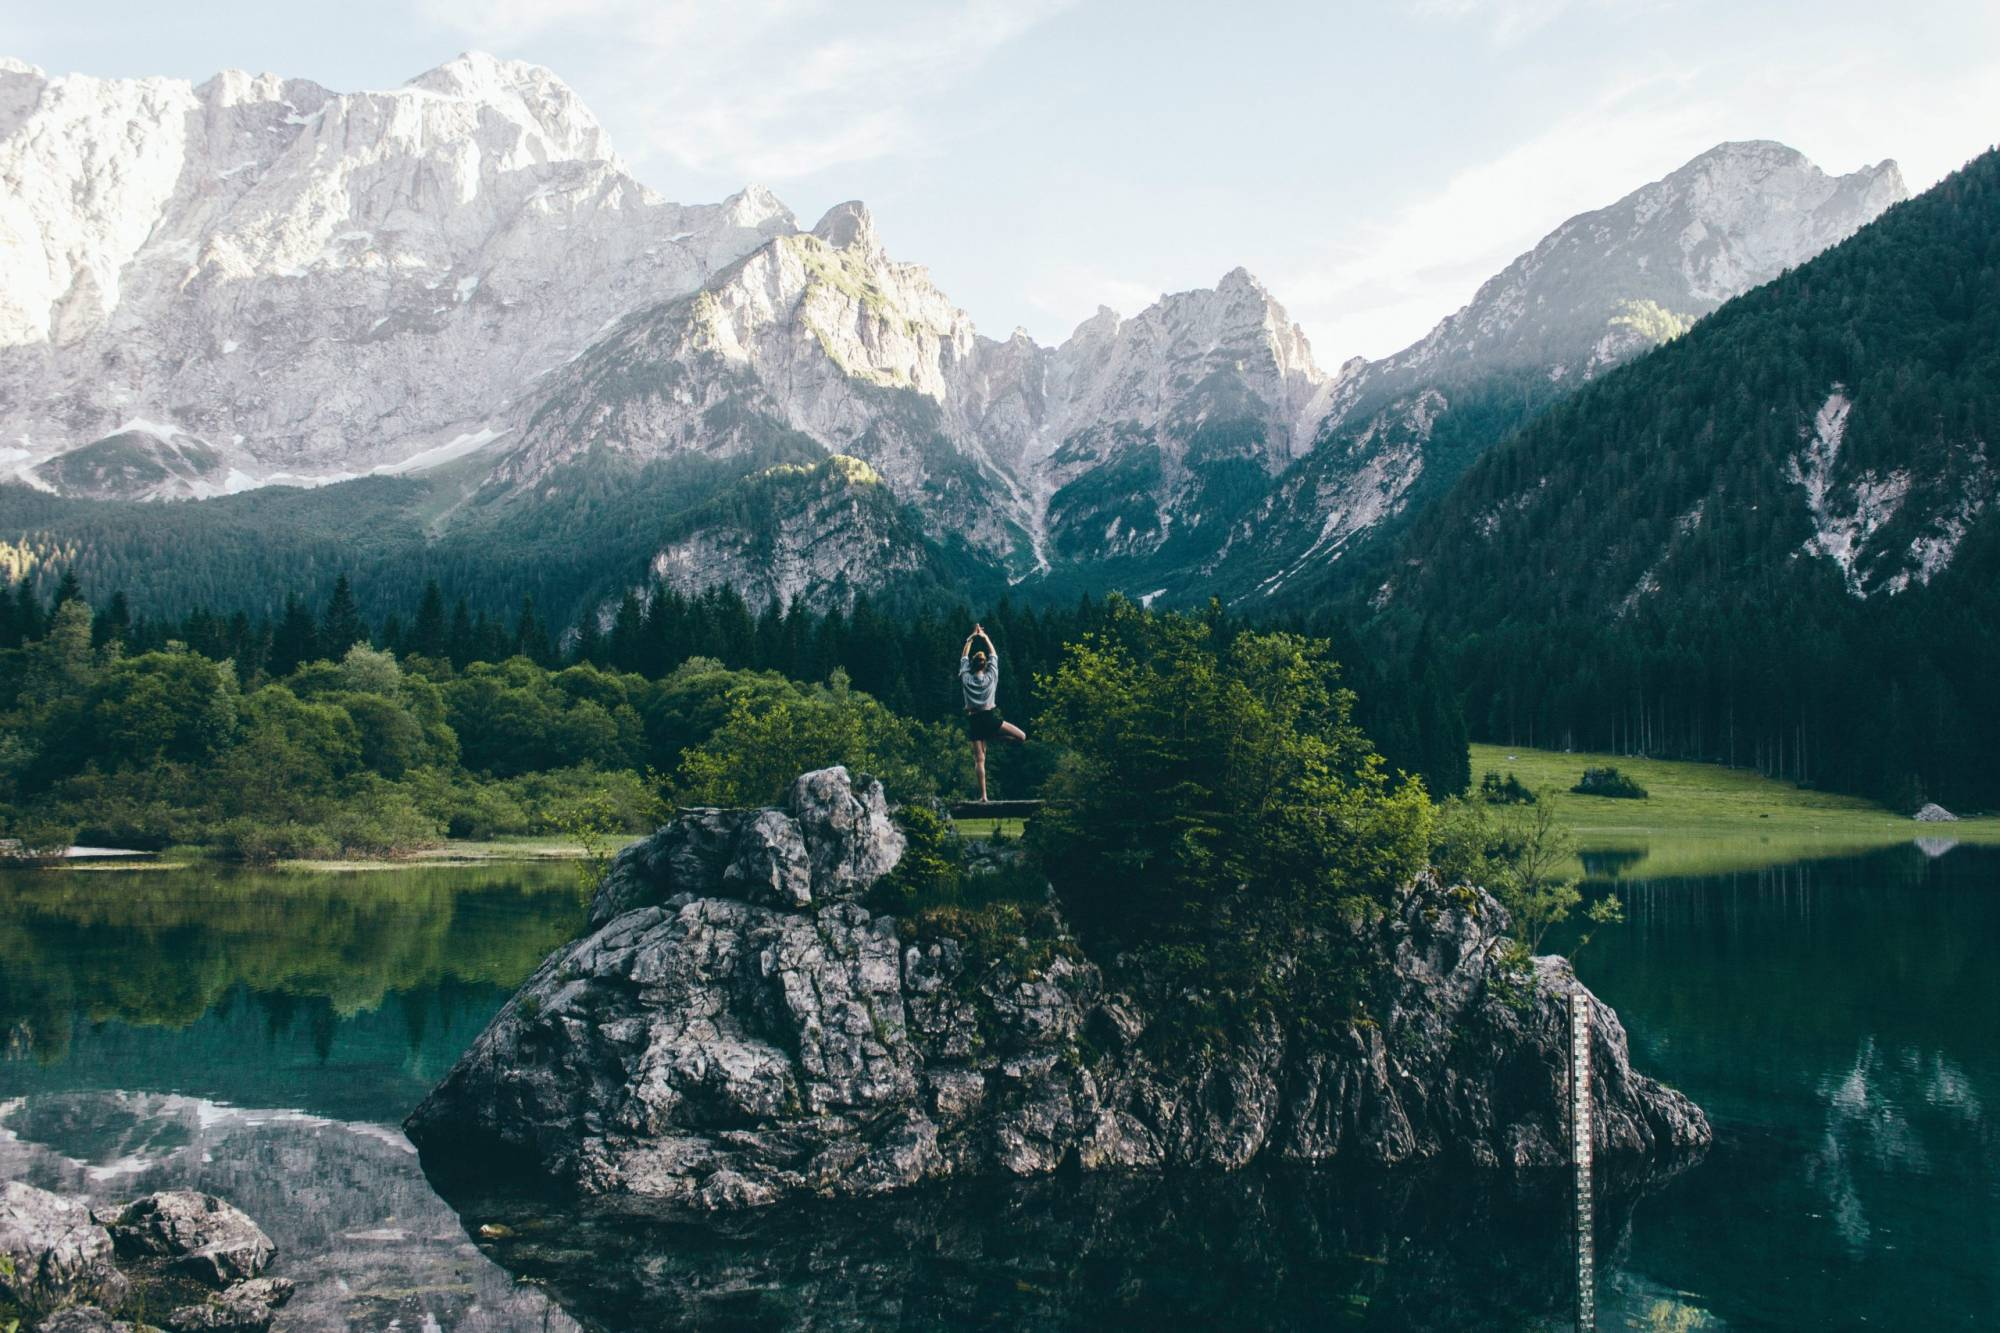 background image of lake in the mountains